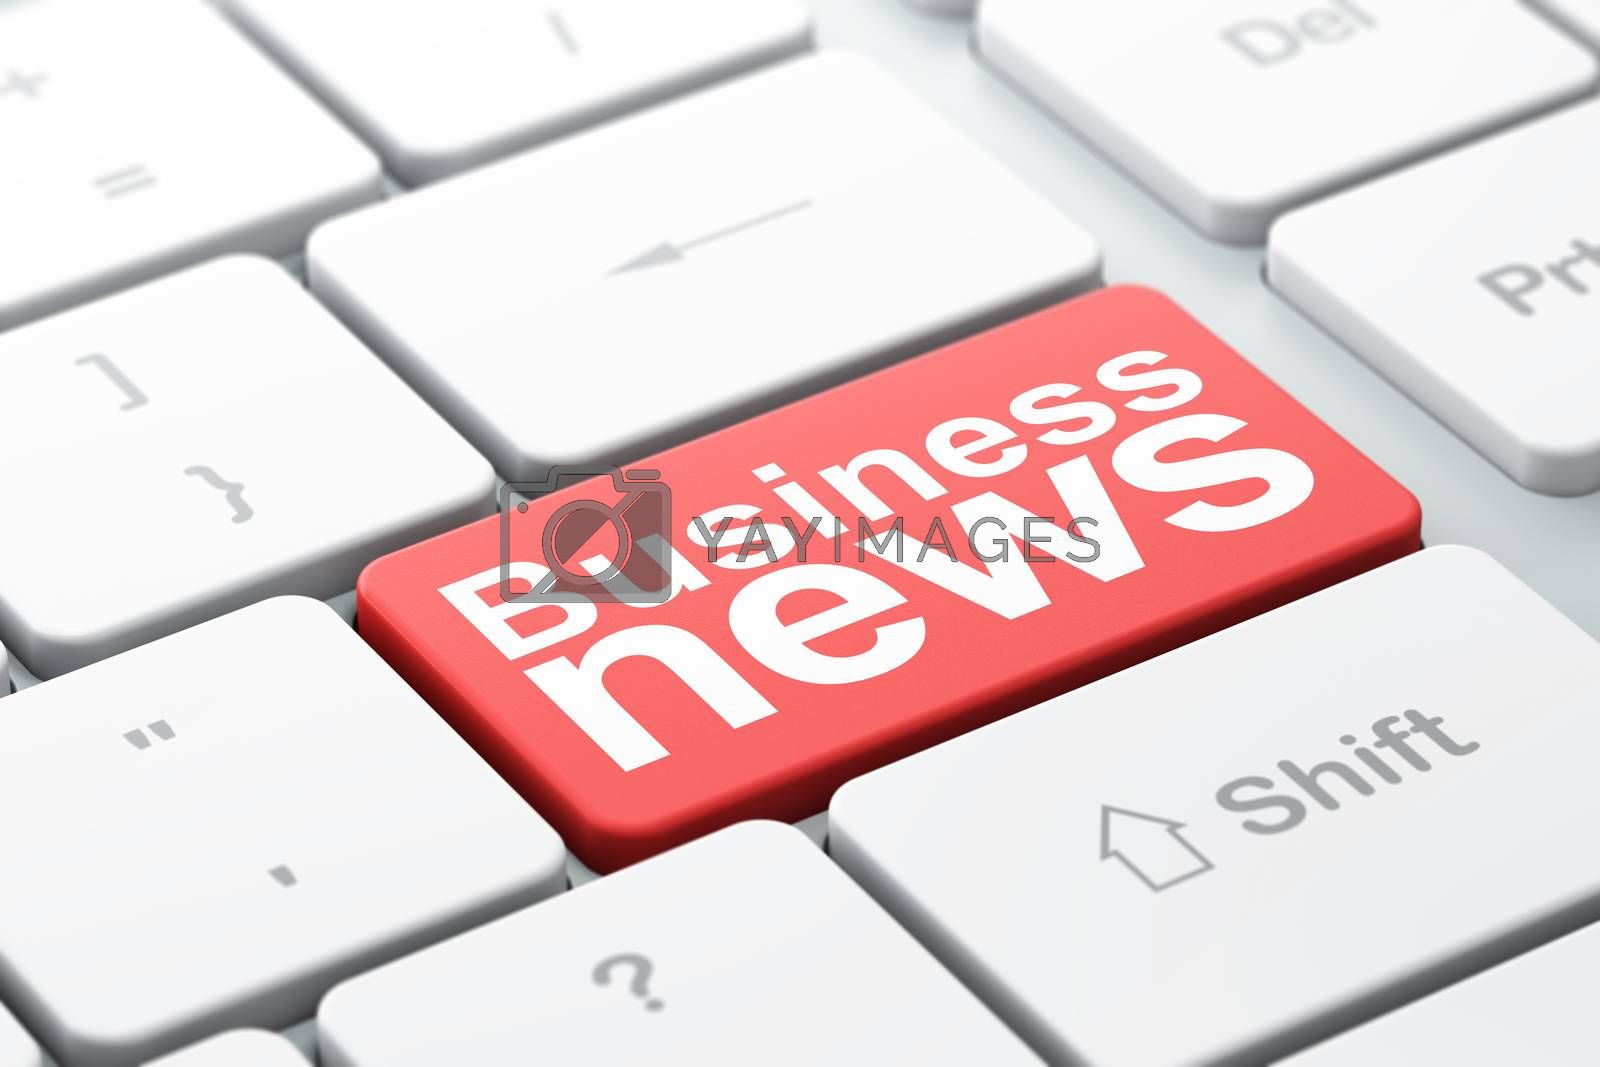 News concept: Business News on computer keyboard background by maxkabakov